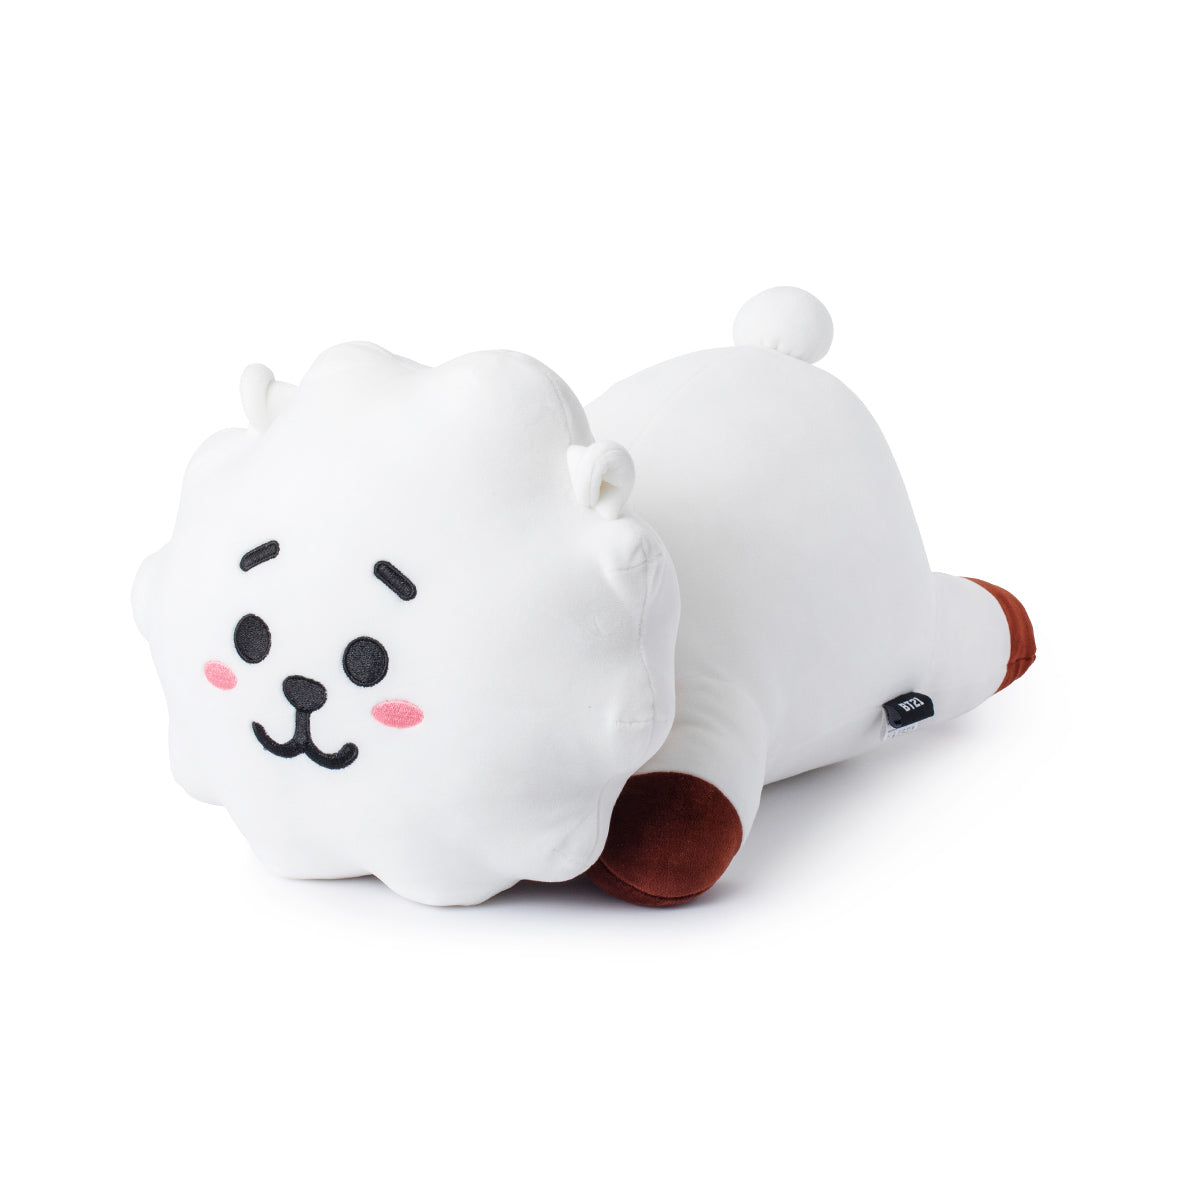 BT21 RJ Lying Pillow Cushion 19.7""